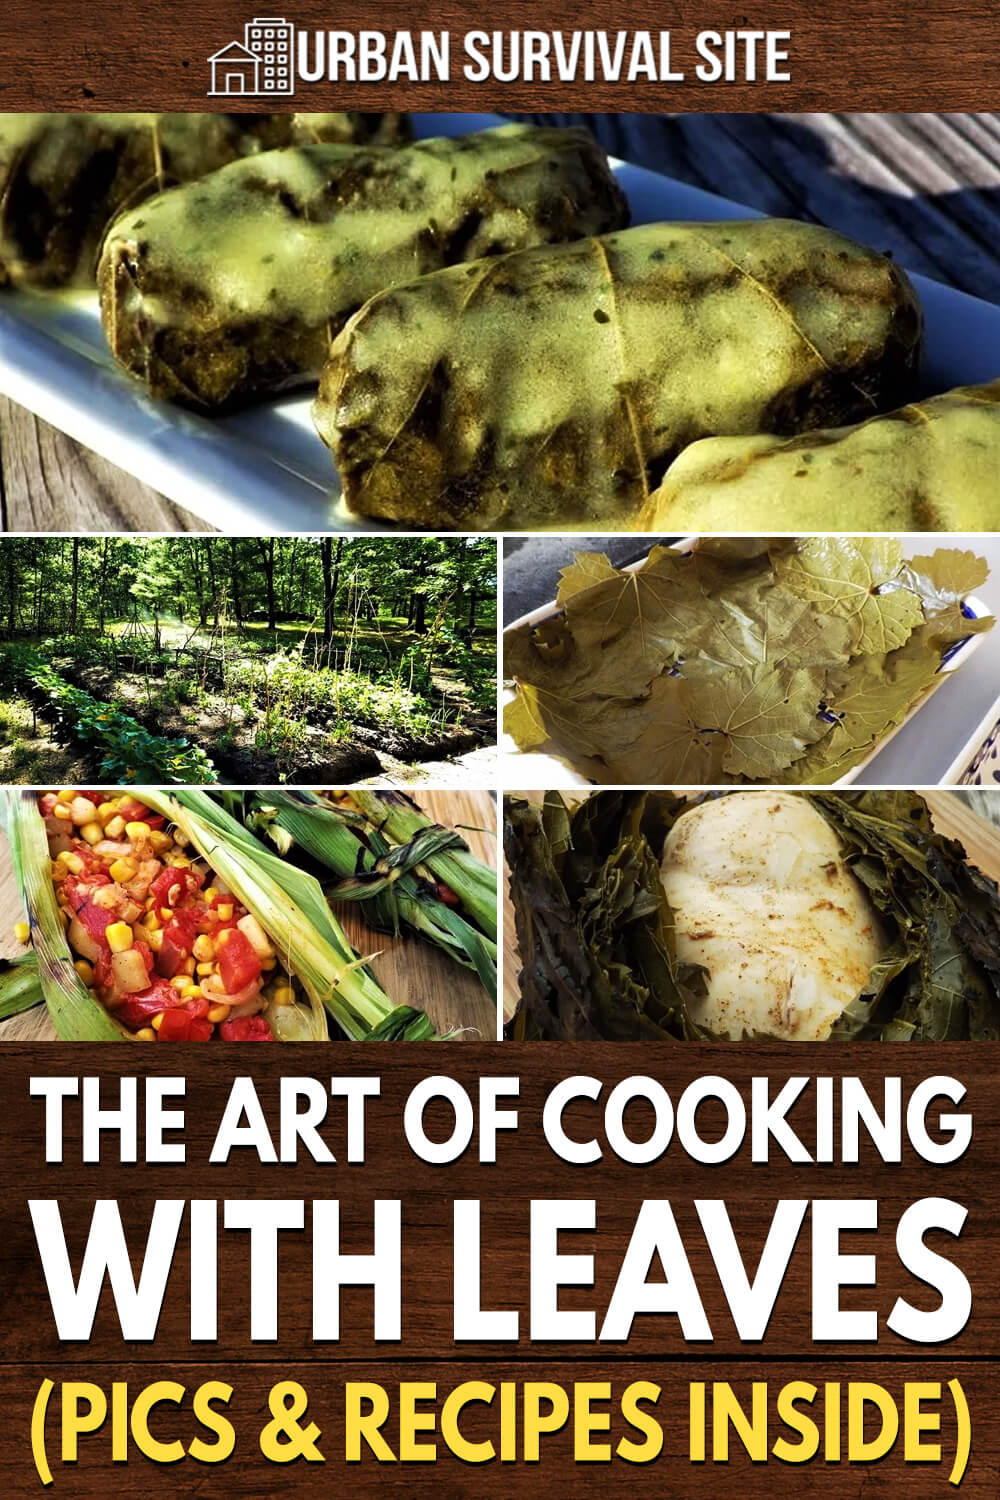 The Art Of Cooking With Leaves